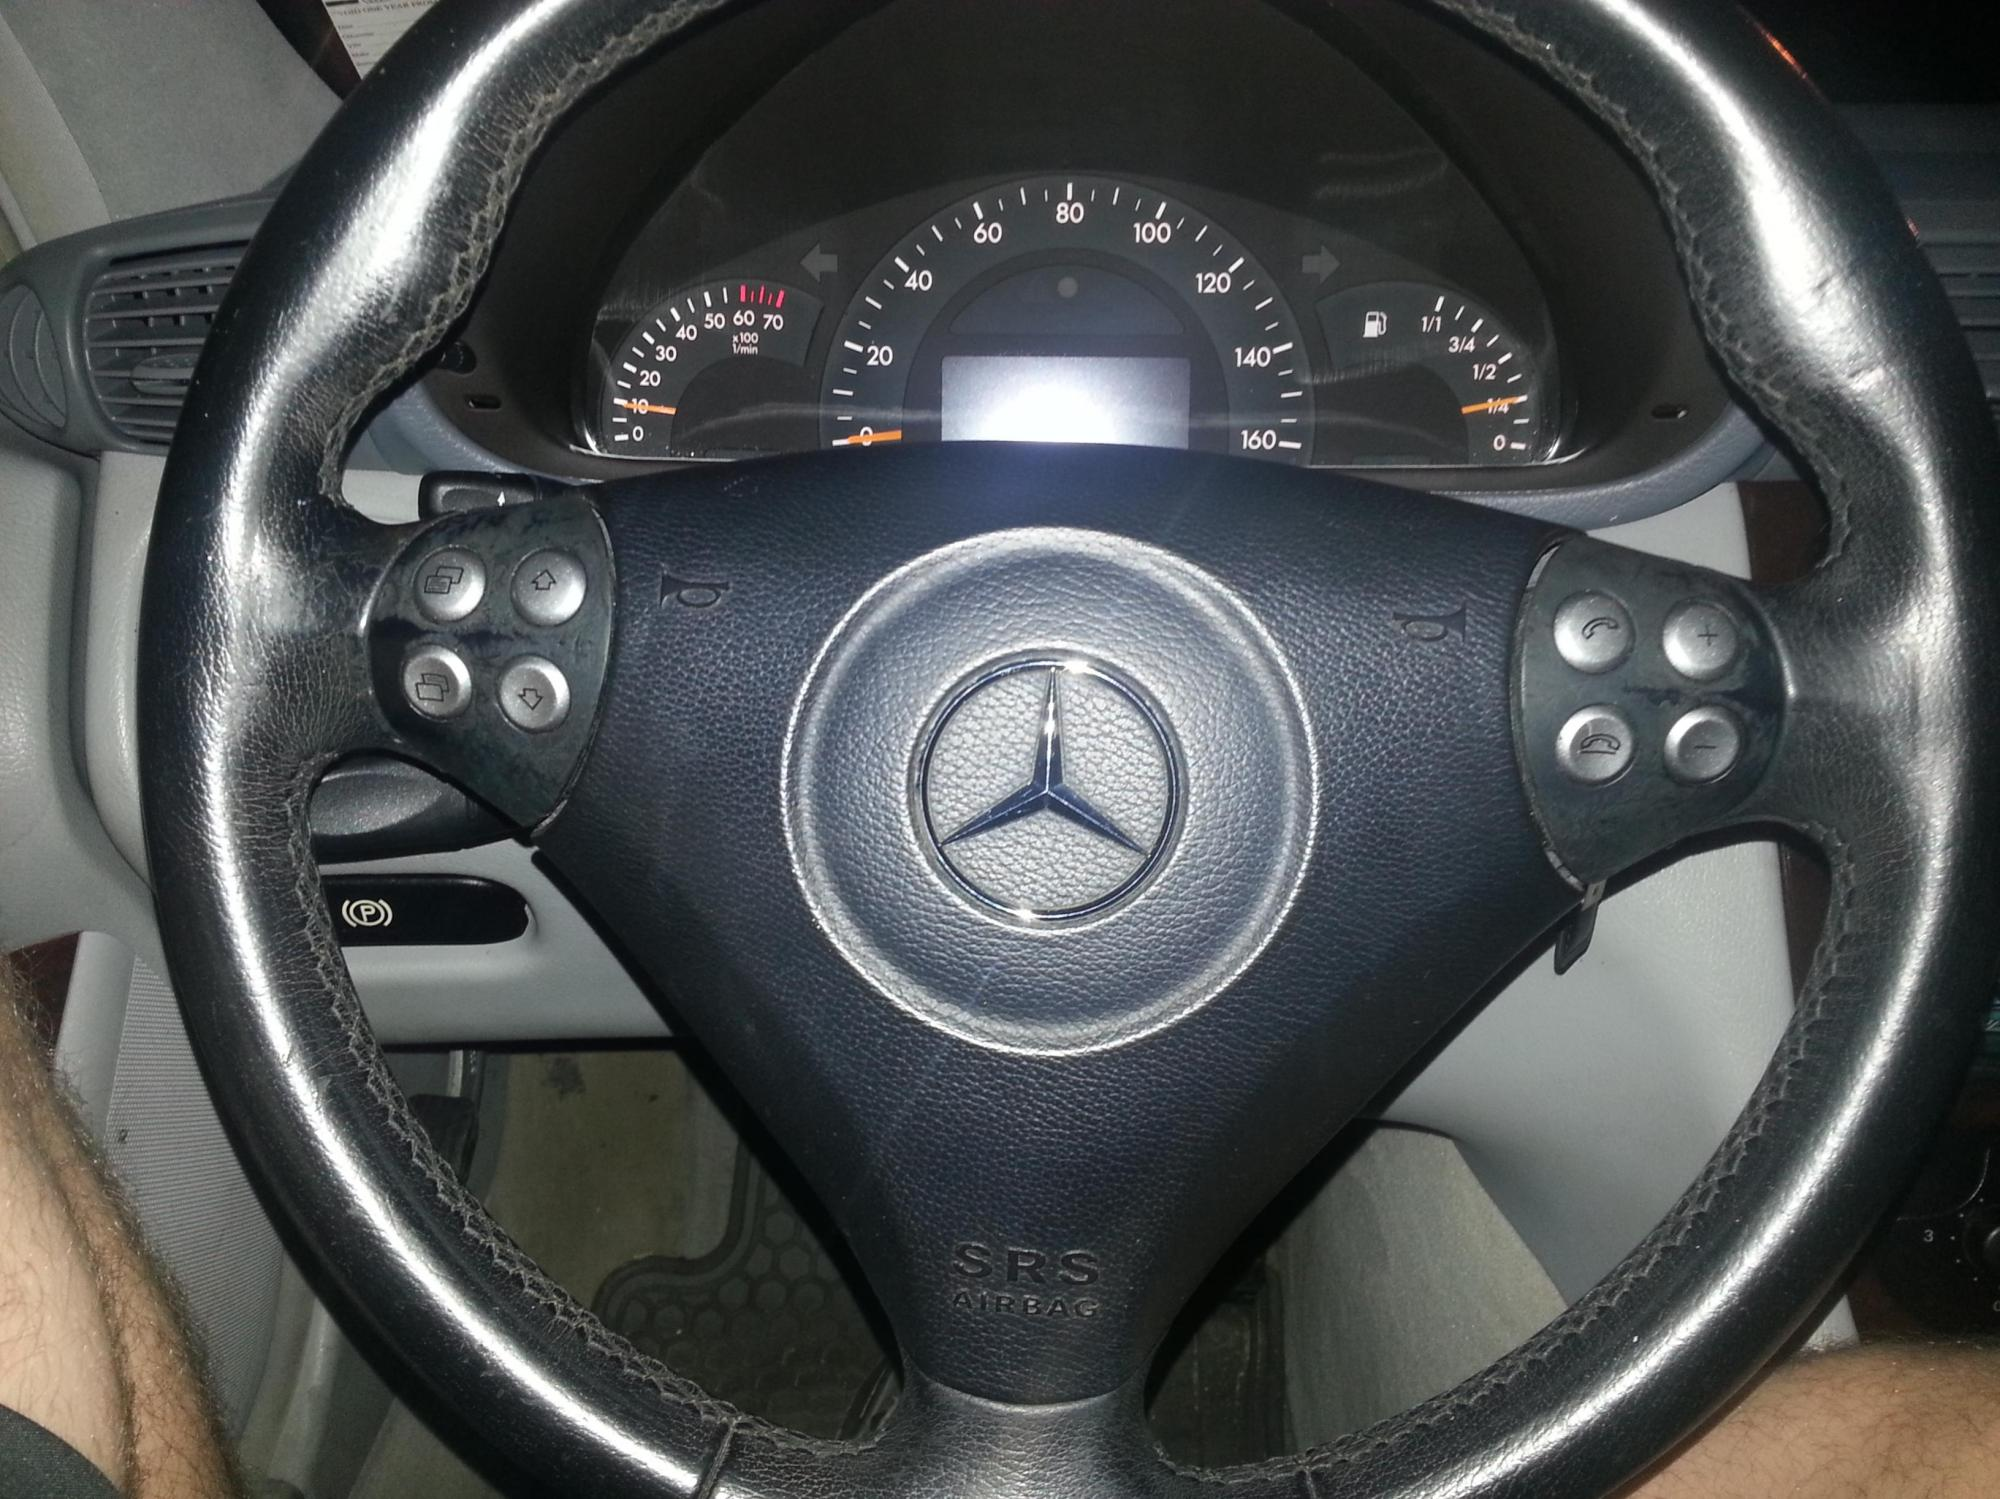 hight resolution of swapped pre face lift with facelifted model steering wheel 20140422 195035 jpg